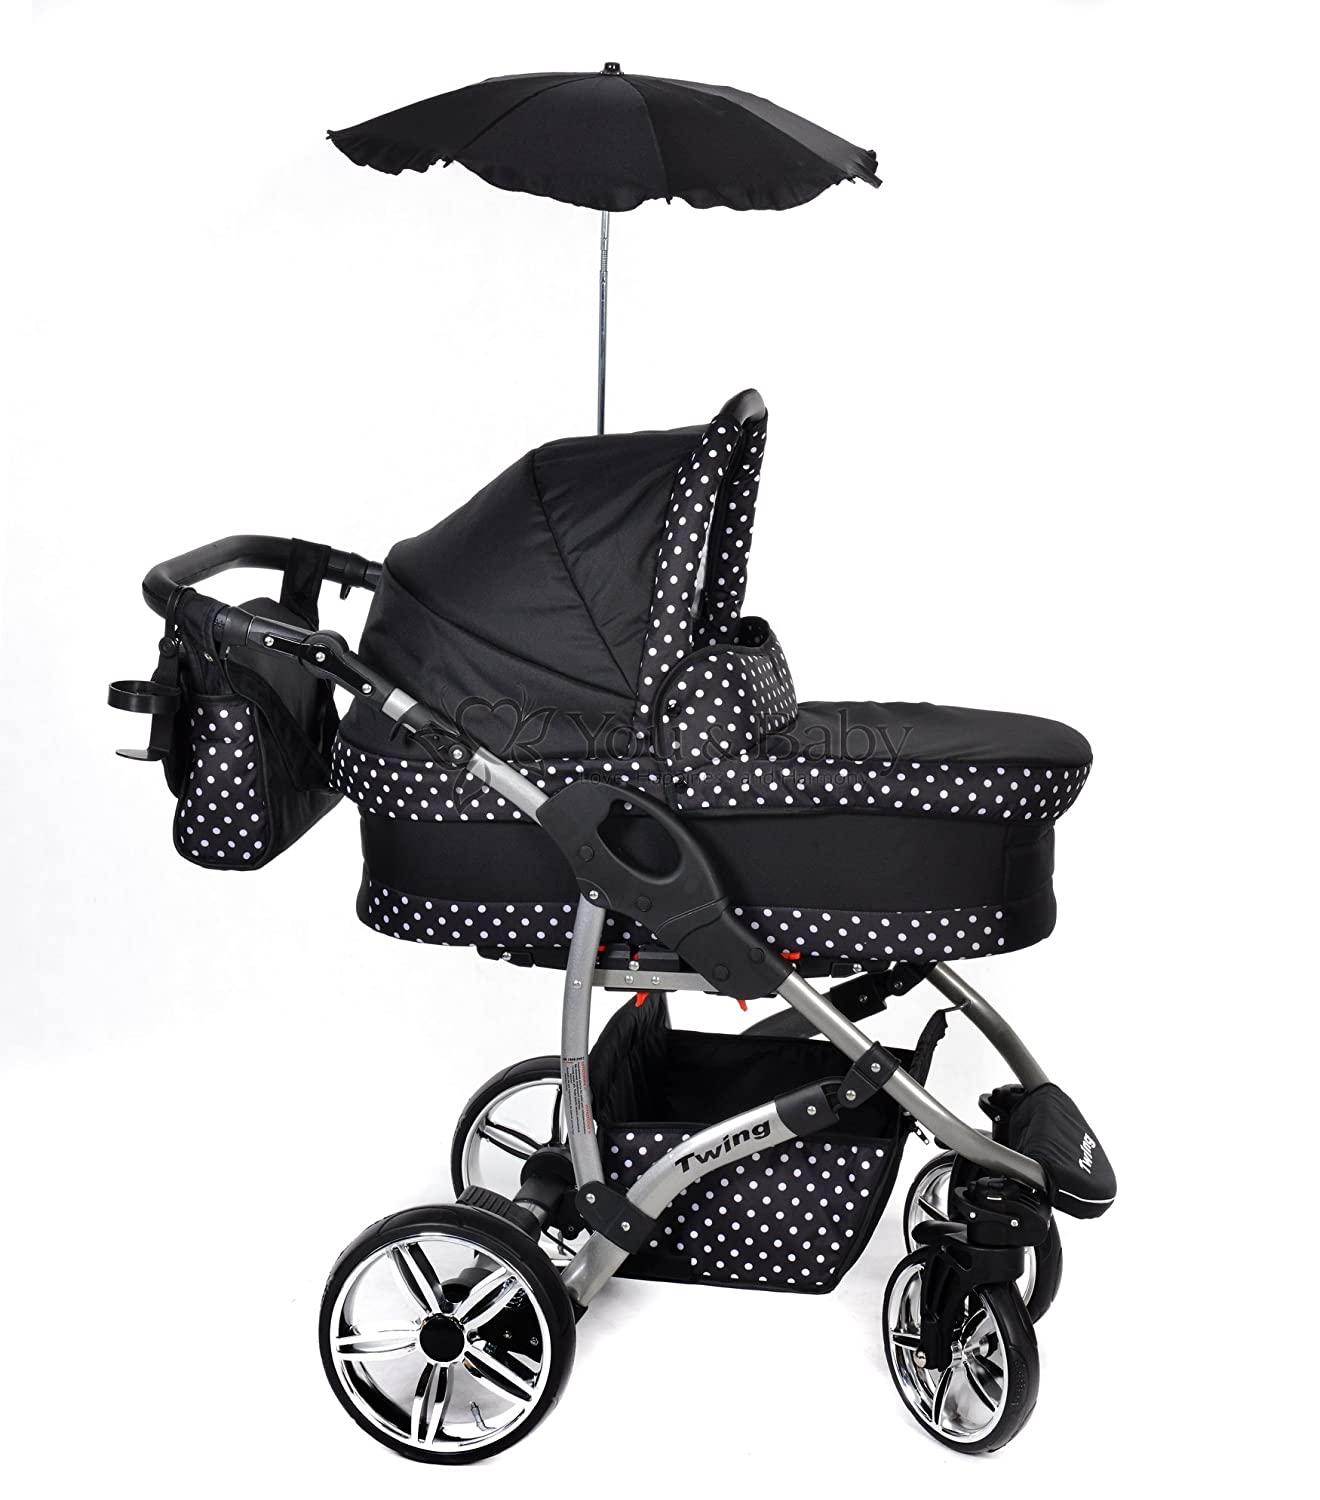 Pushchair /& Accessories 3-in-1 Travel System with Baby Pram Black /& White Polka Dots Car Seat Twing